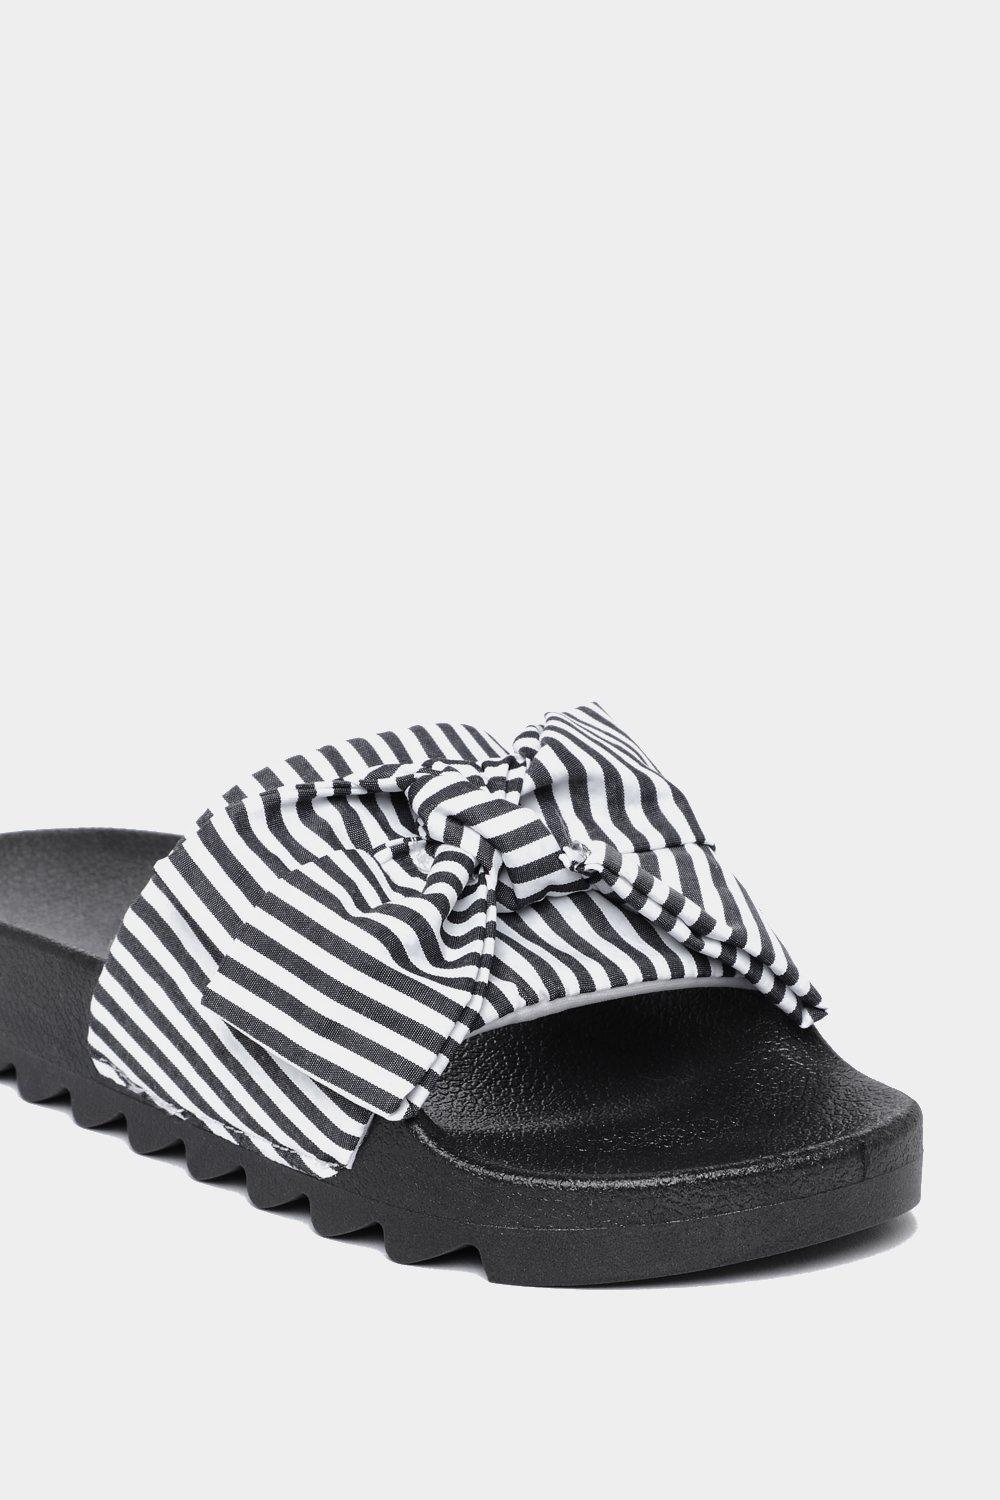 cheap Manchester Slide into the DM's Striped Slider discount explore countdown package for sale yVgX2PAzK